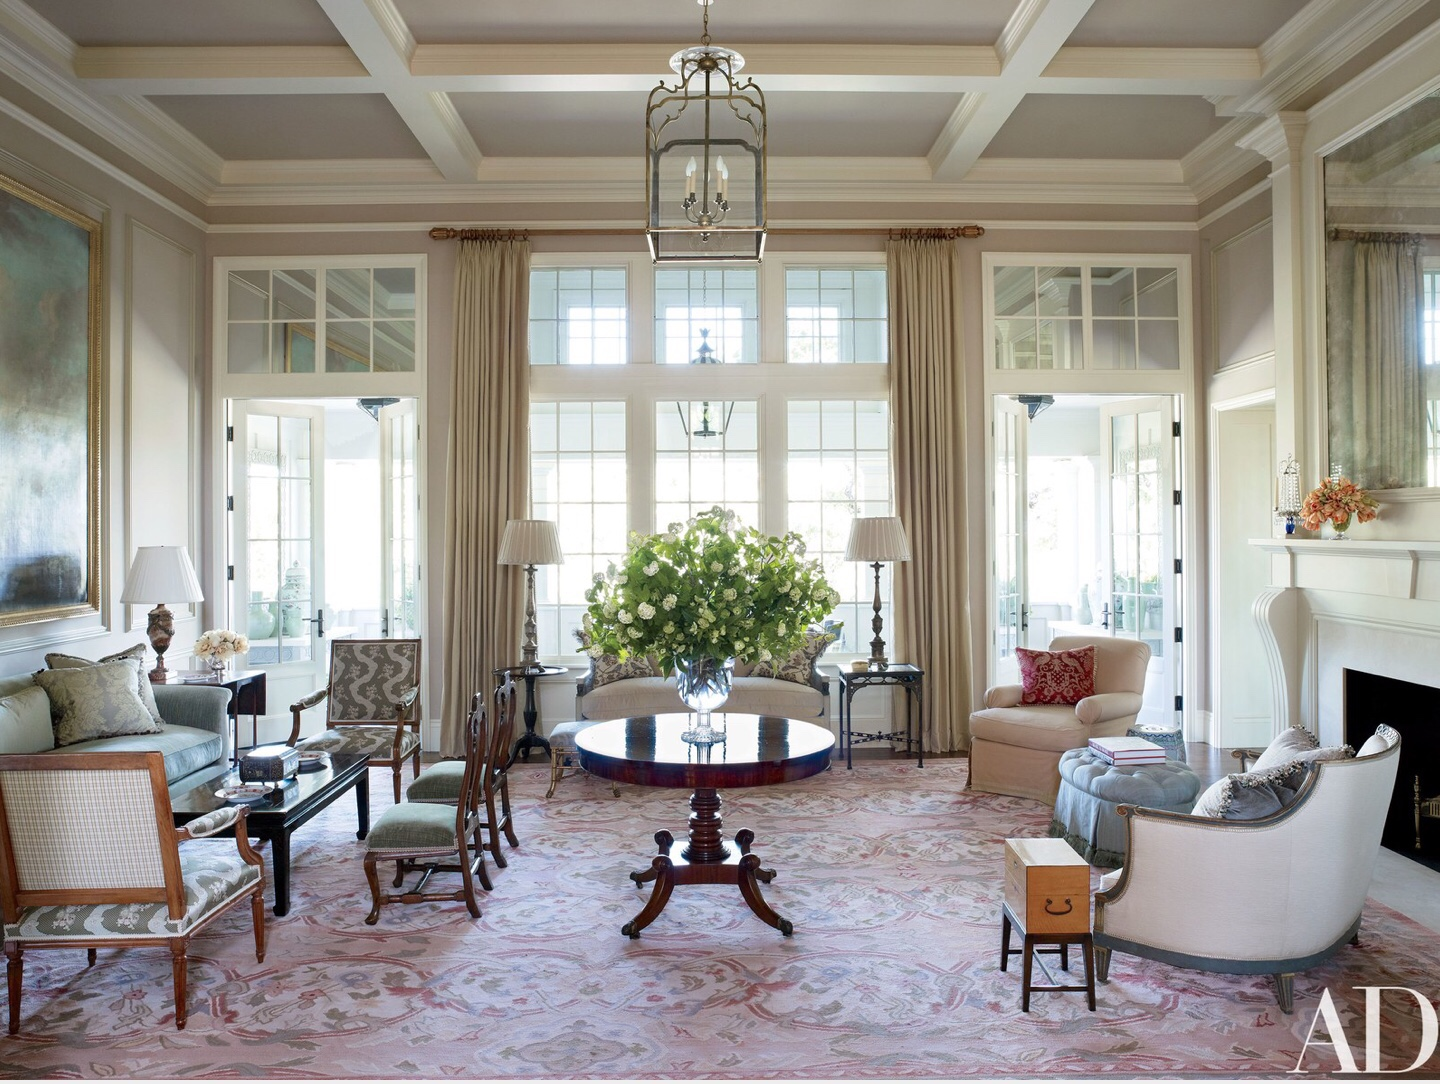 Living room designed by Suzanne Rheinstein incorporating Regency style furnishings, as seen in Architectural Digest ,April 2017  Photo by Francesco Lagnese